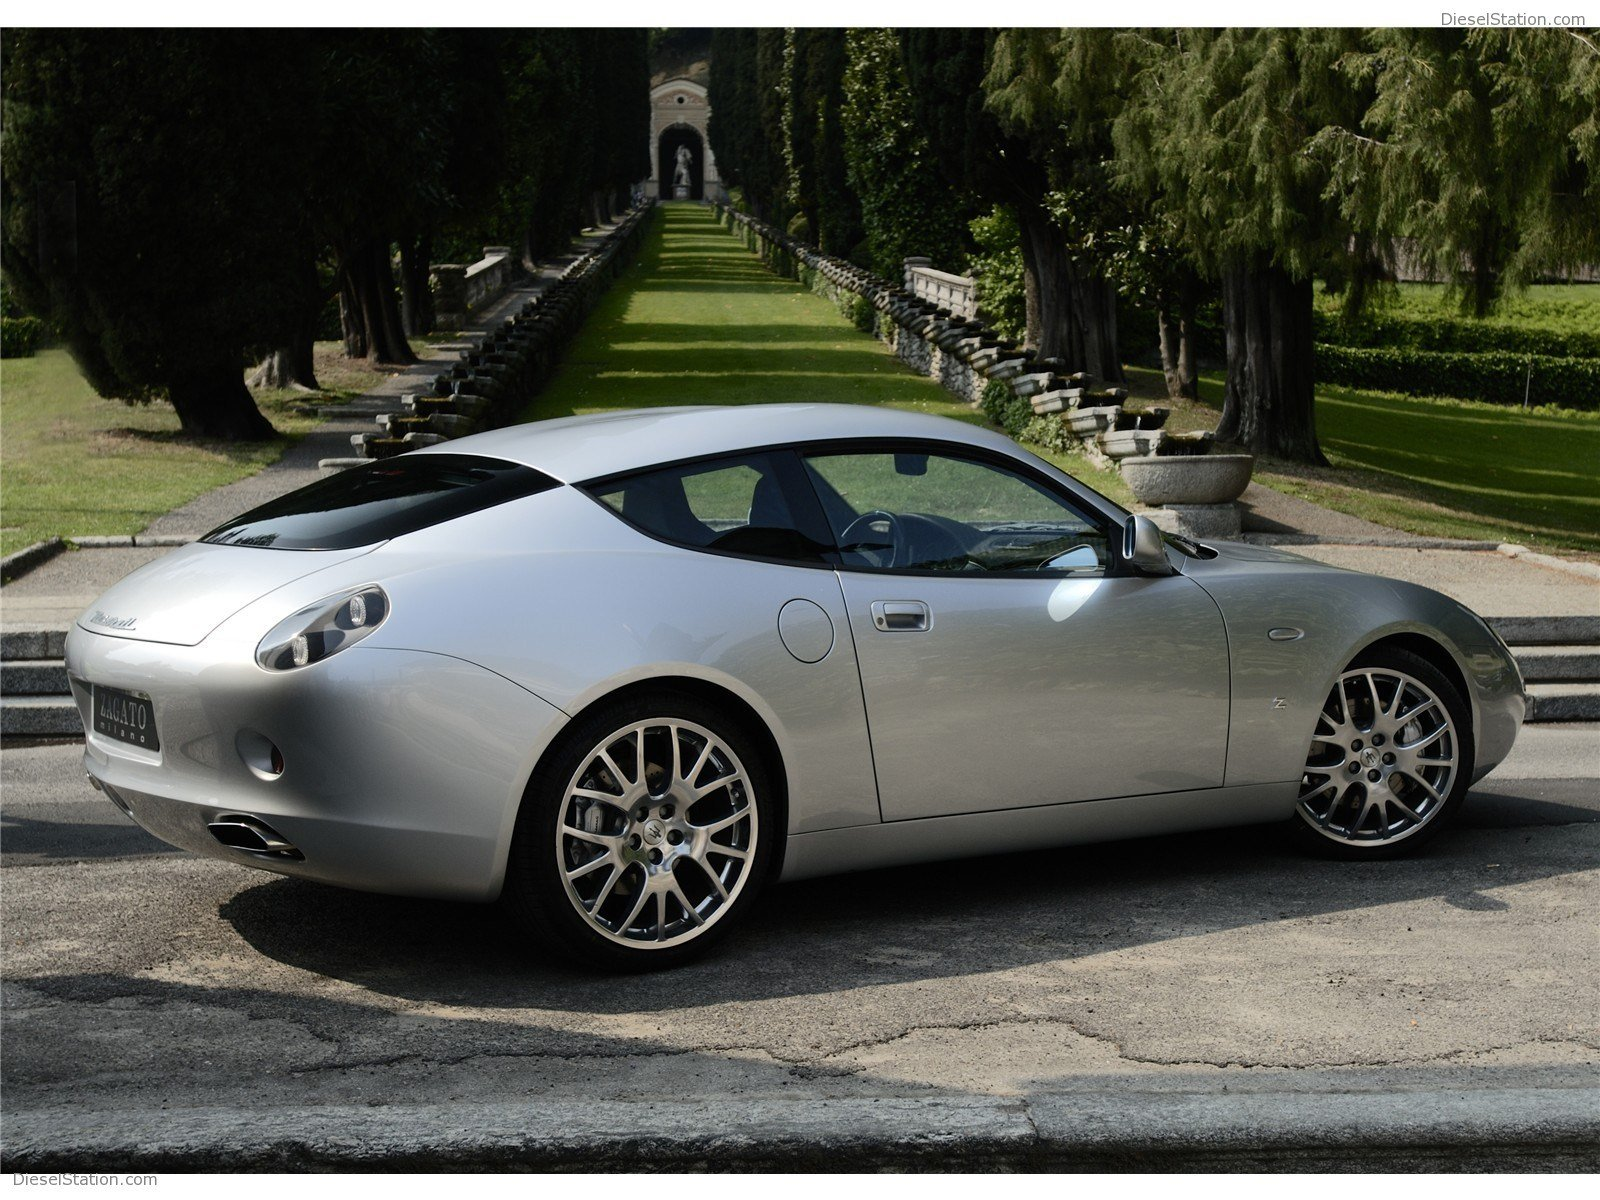 New Maserati Gs Zagato Exotic Car Pictures 06 Of 24 Diesel On This Month